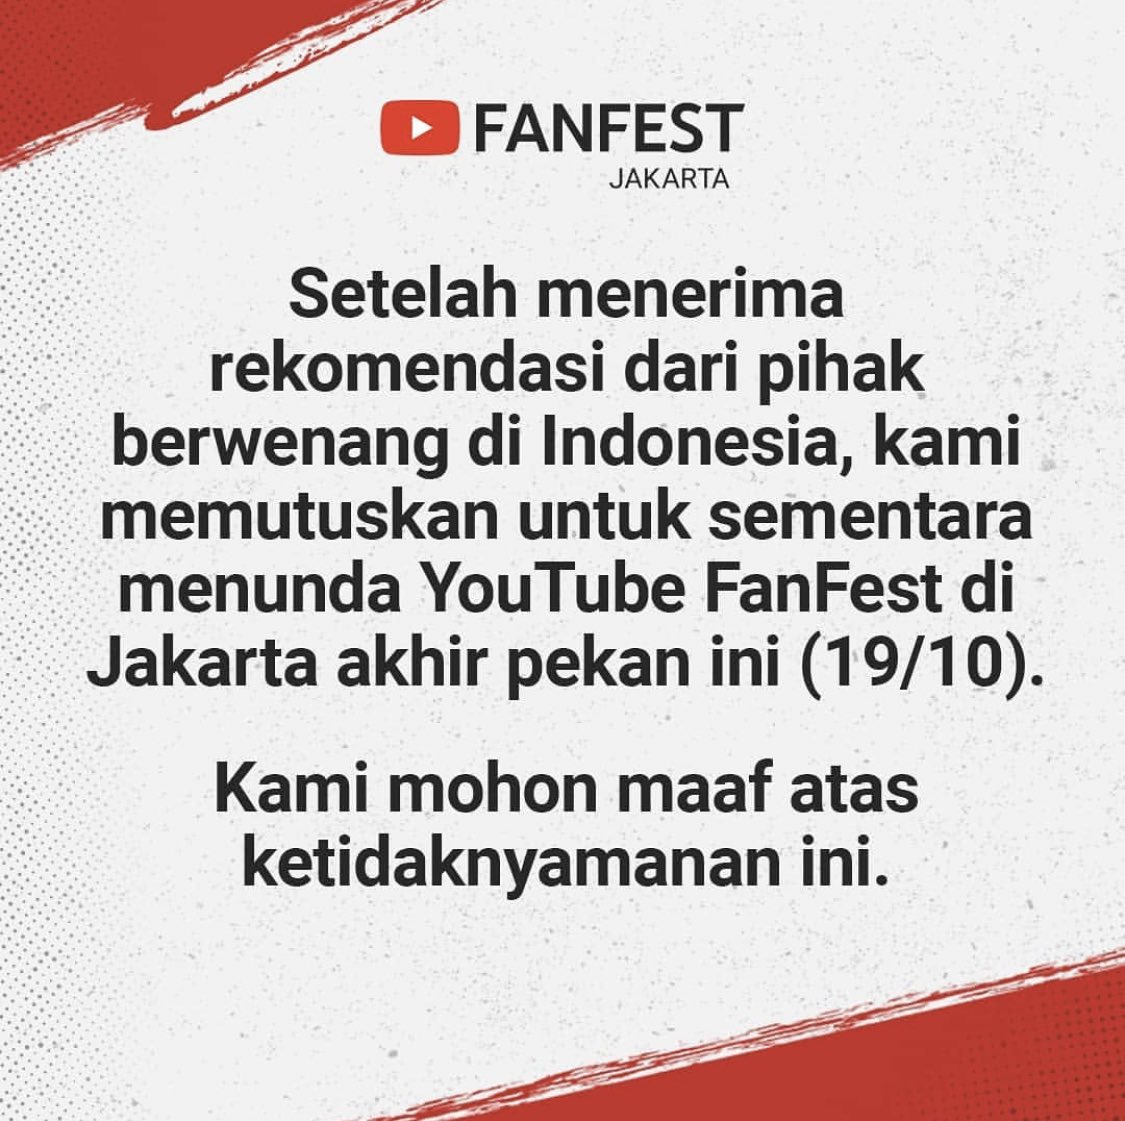   YouTube FanFest in Jakarta have been POSTPONED. Ticket holders will receive an email with information about their tickets today. #YTFFID<br>http://pic.twitter.com/i9mxZze4hU